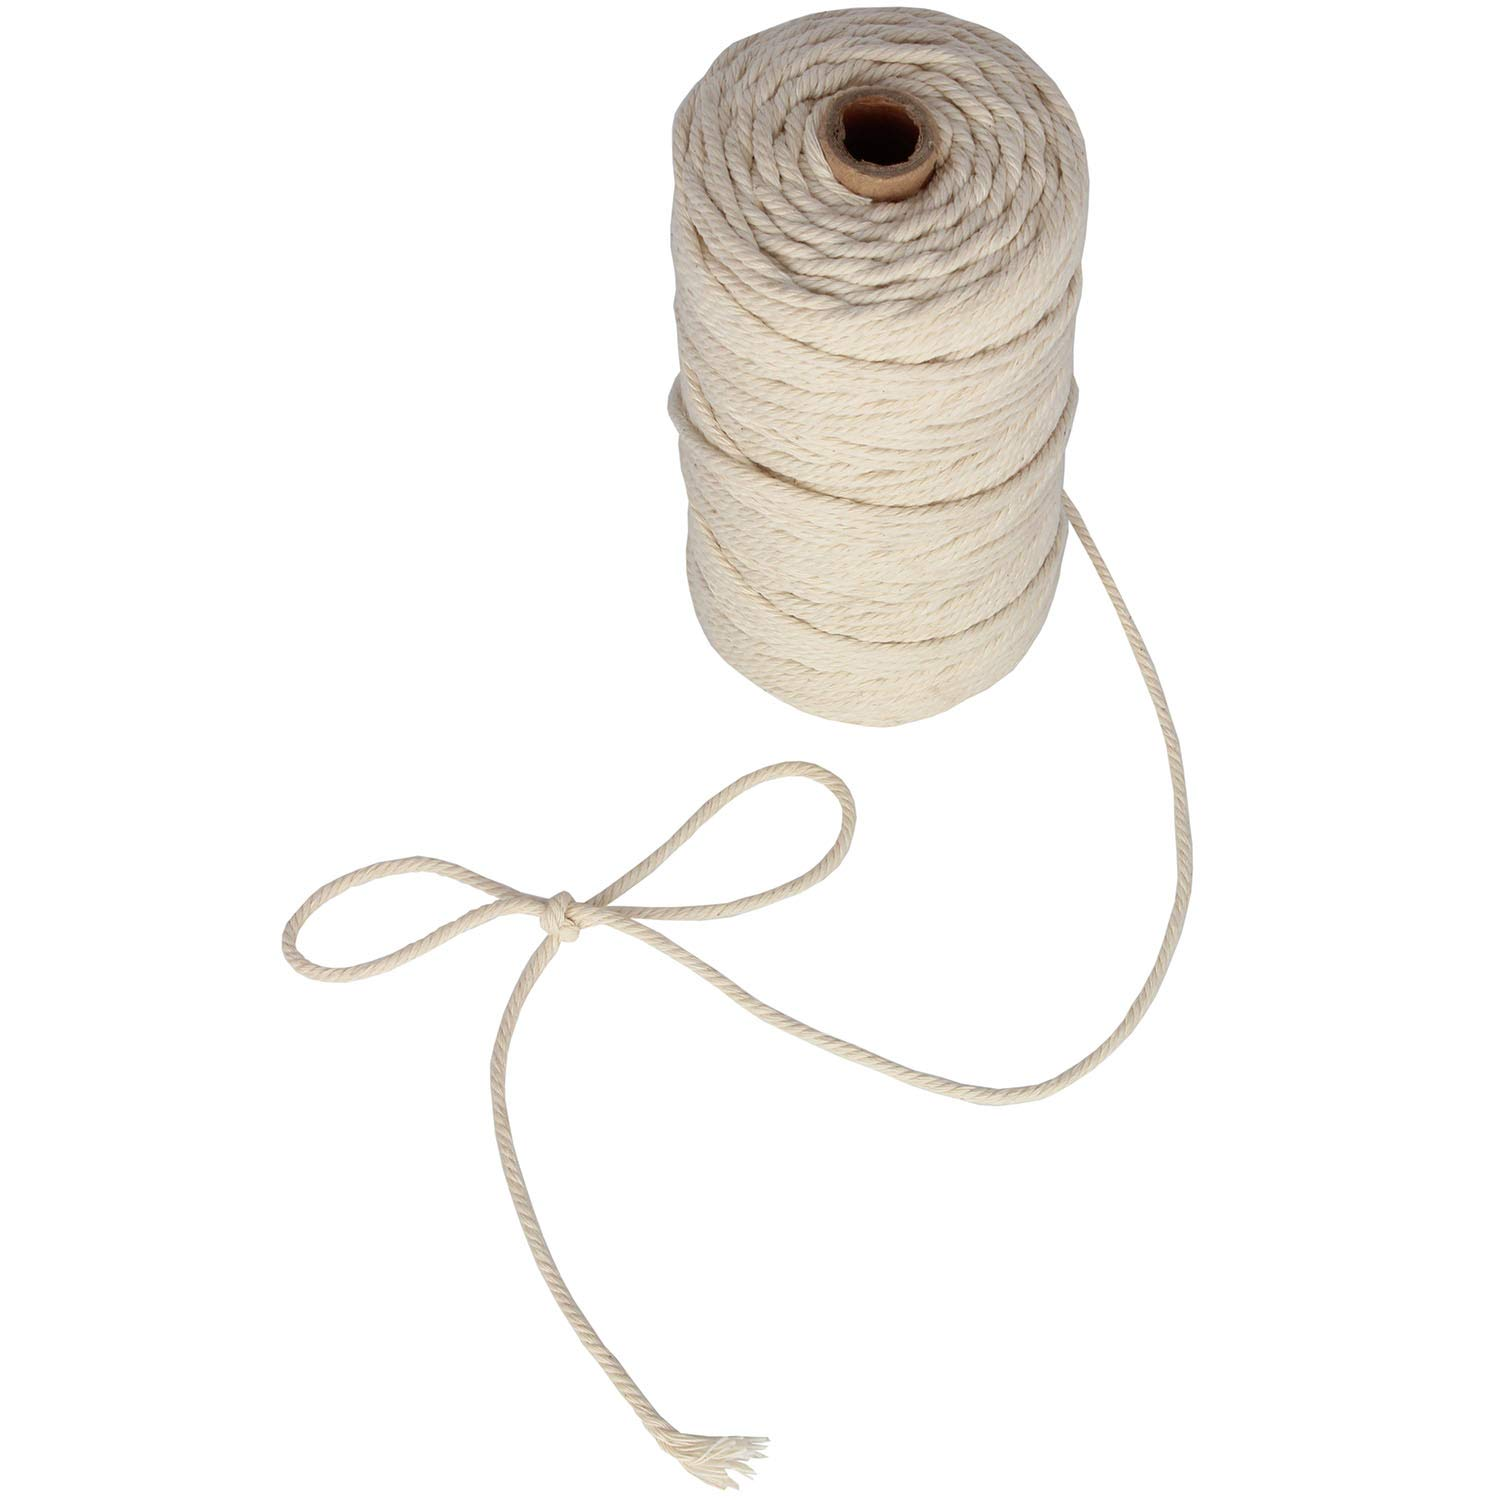 164feet 3mm Cotton Bakers Twine Food Safe Cooking String for Tying Meat Making Sausage SAN RONG